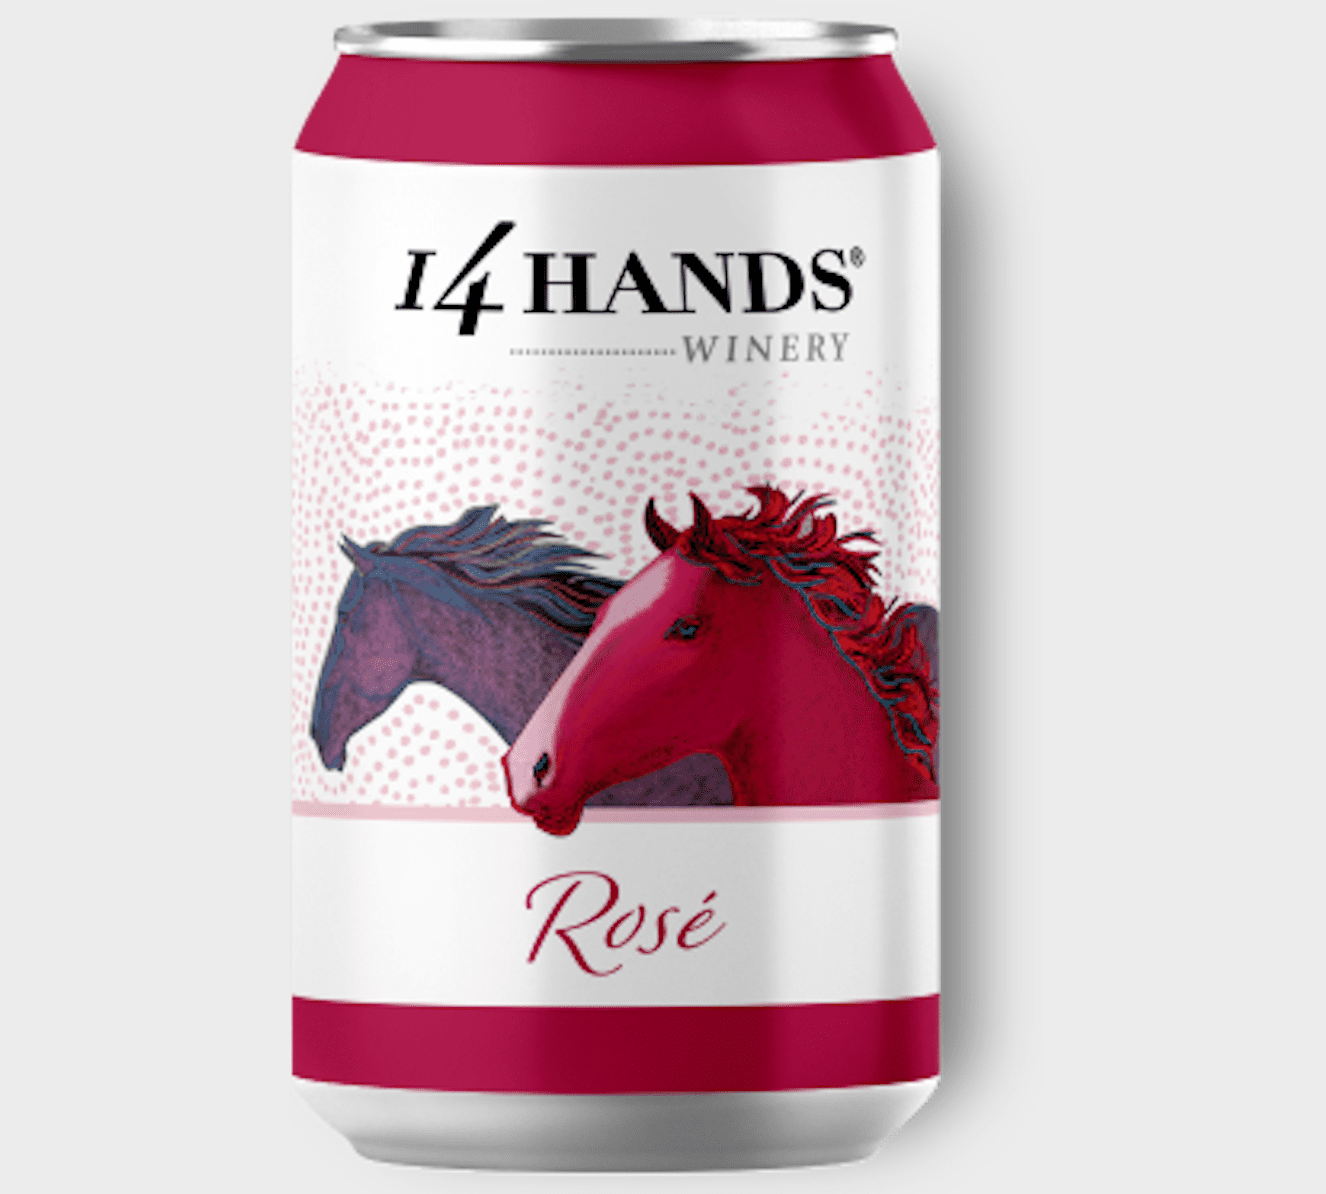 14 Hands Rose in a can